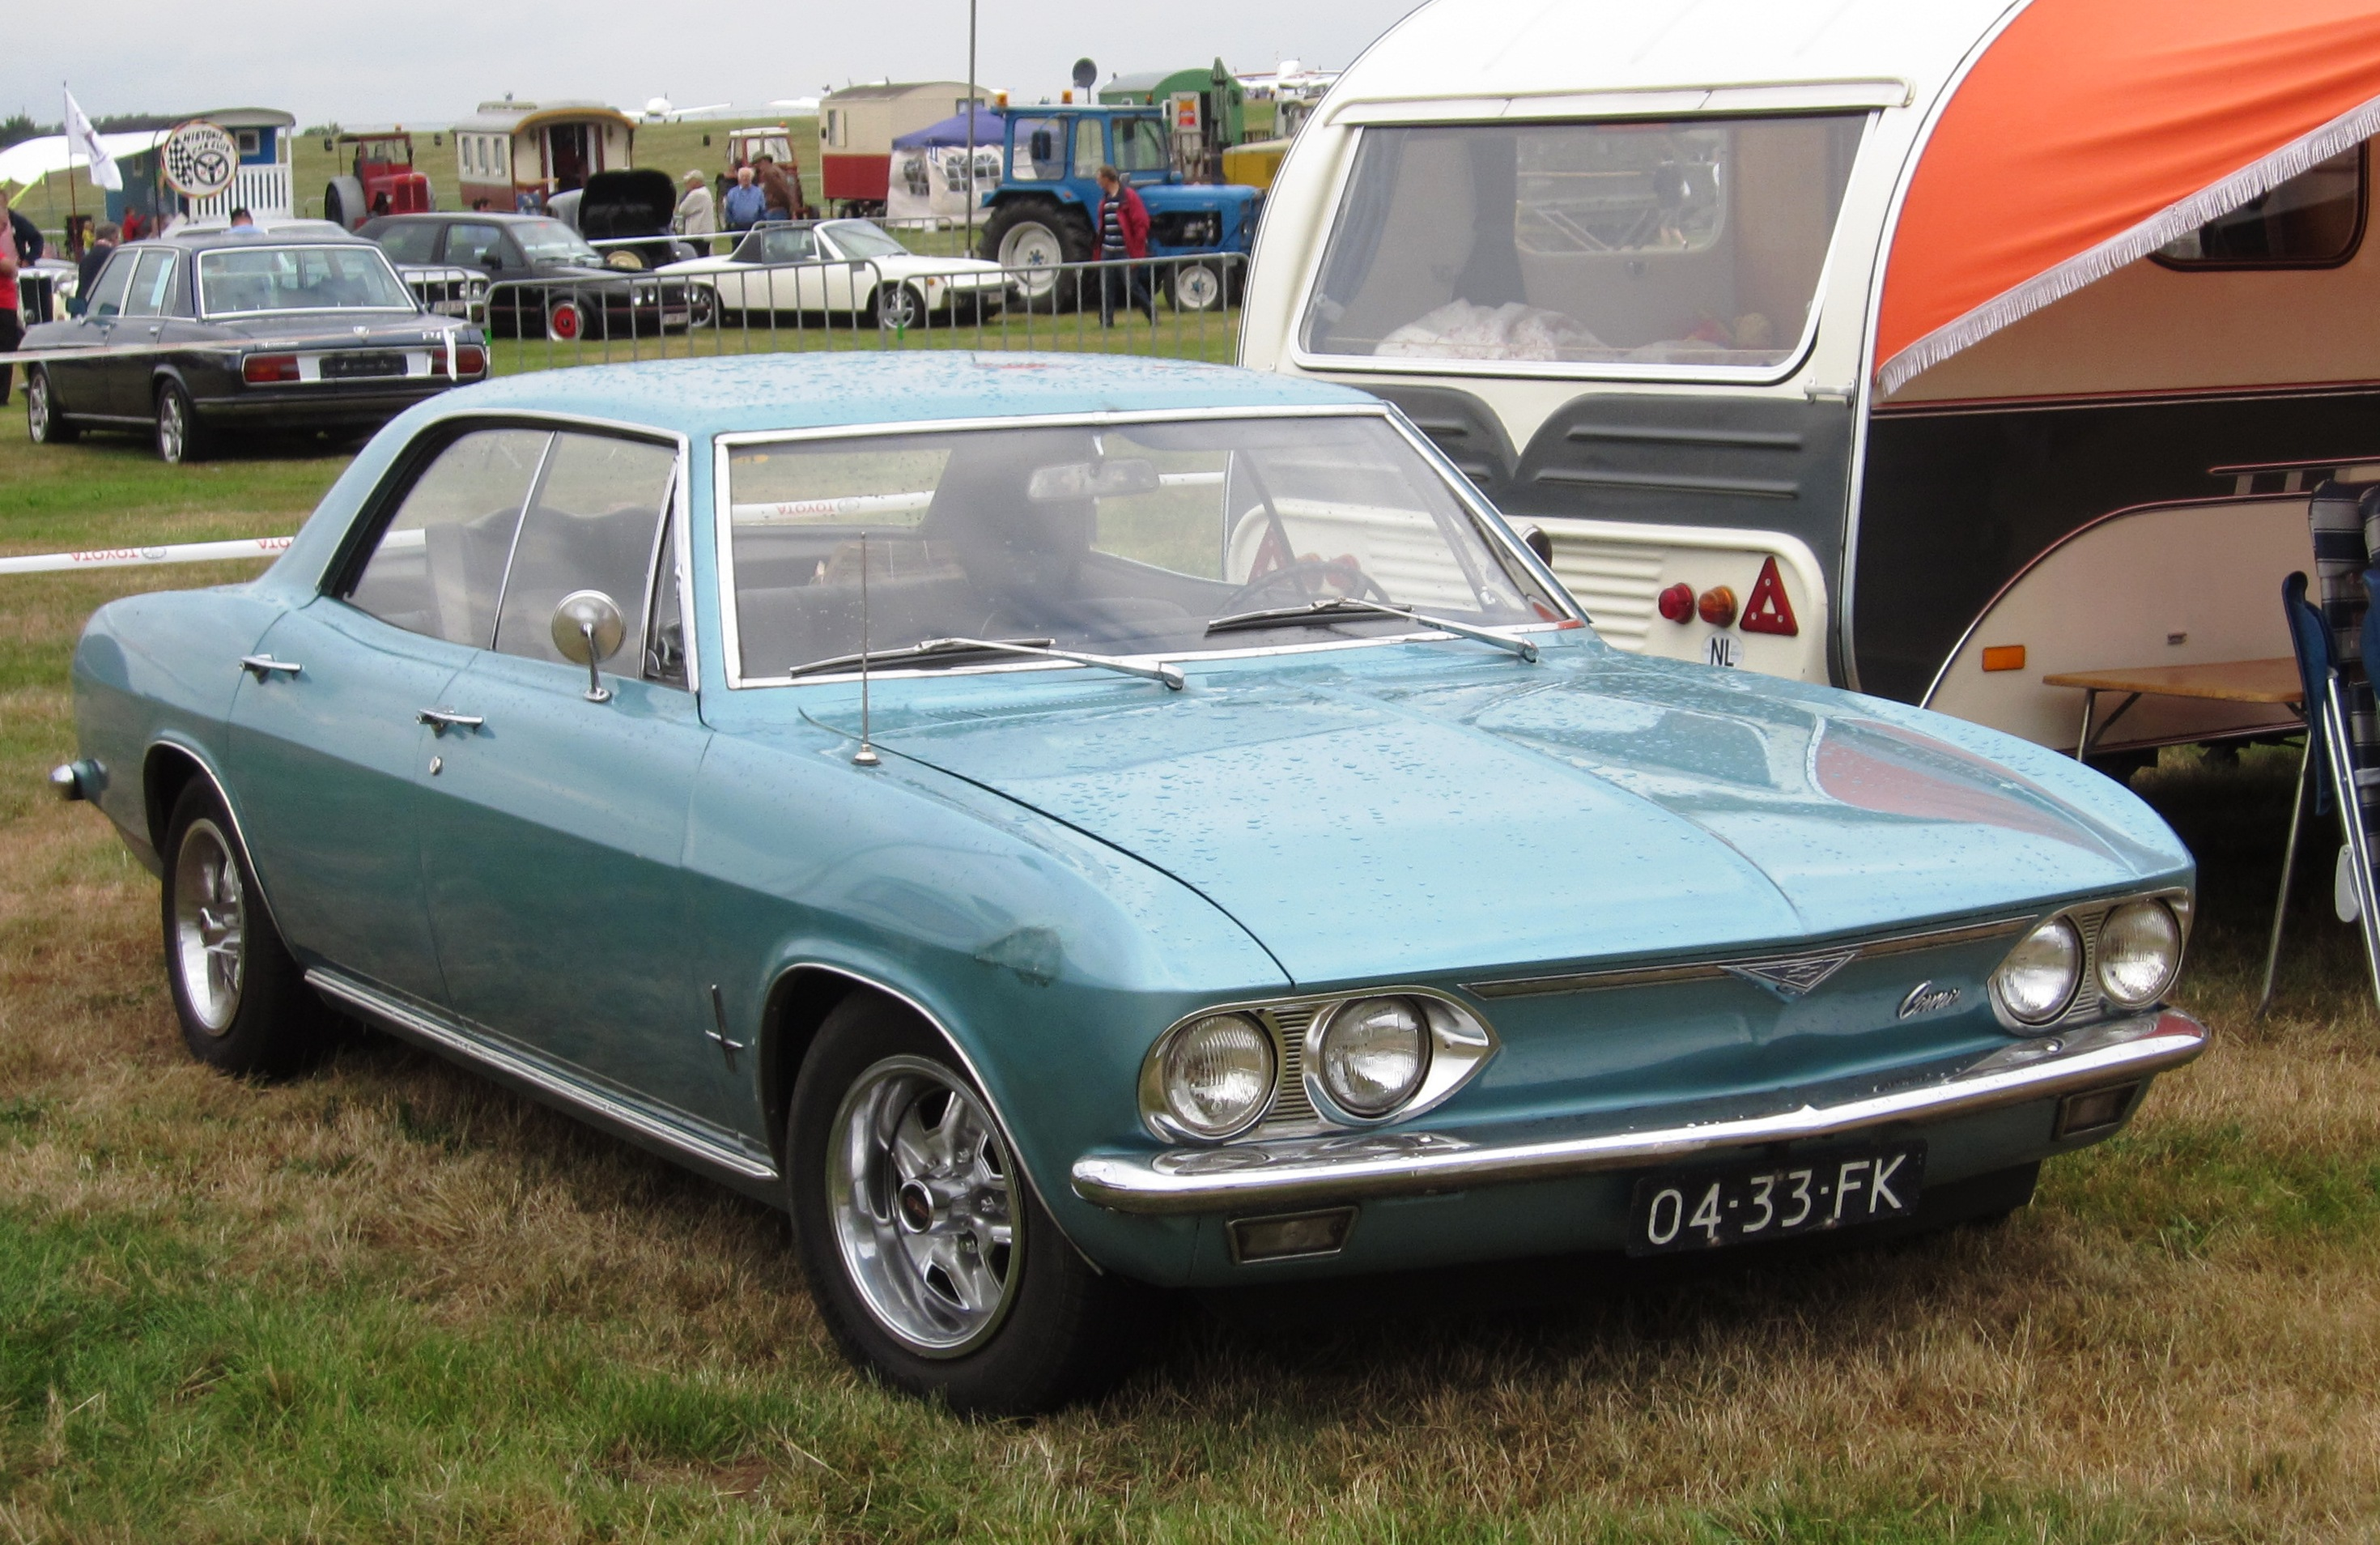 Old Chevy Cars >> File:Chevrolet Corvair sedan second generation ca 1966.JPG - Wikimedia Commons